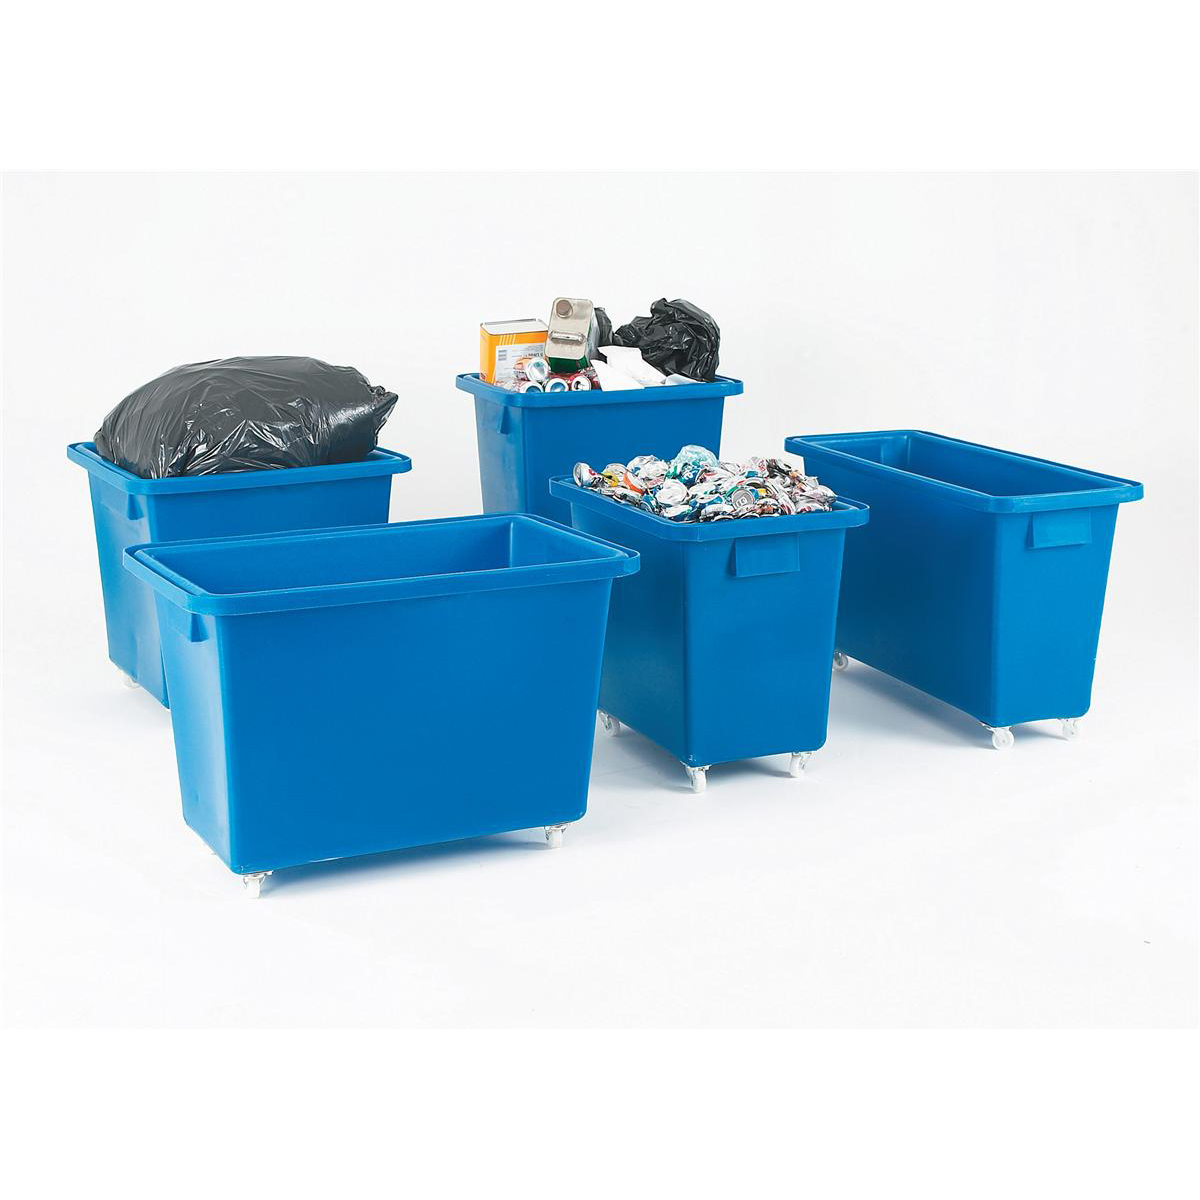 Recycling Bins Bottle Skip Four Castors Medium Density Polyethylene 790x470x550mm Royal Blue